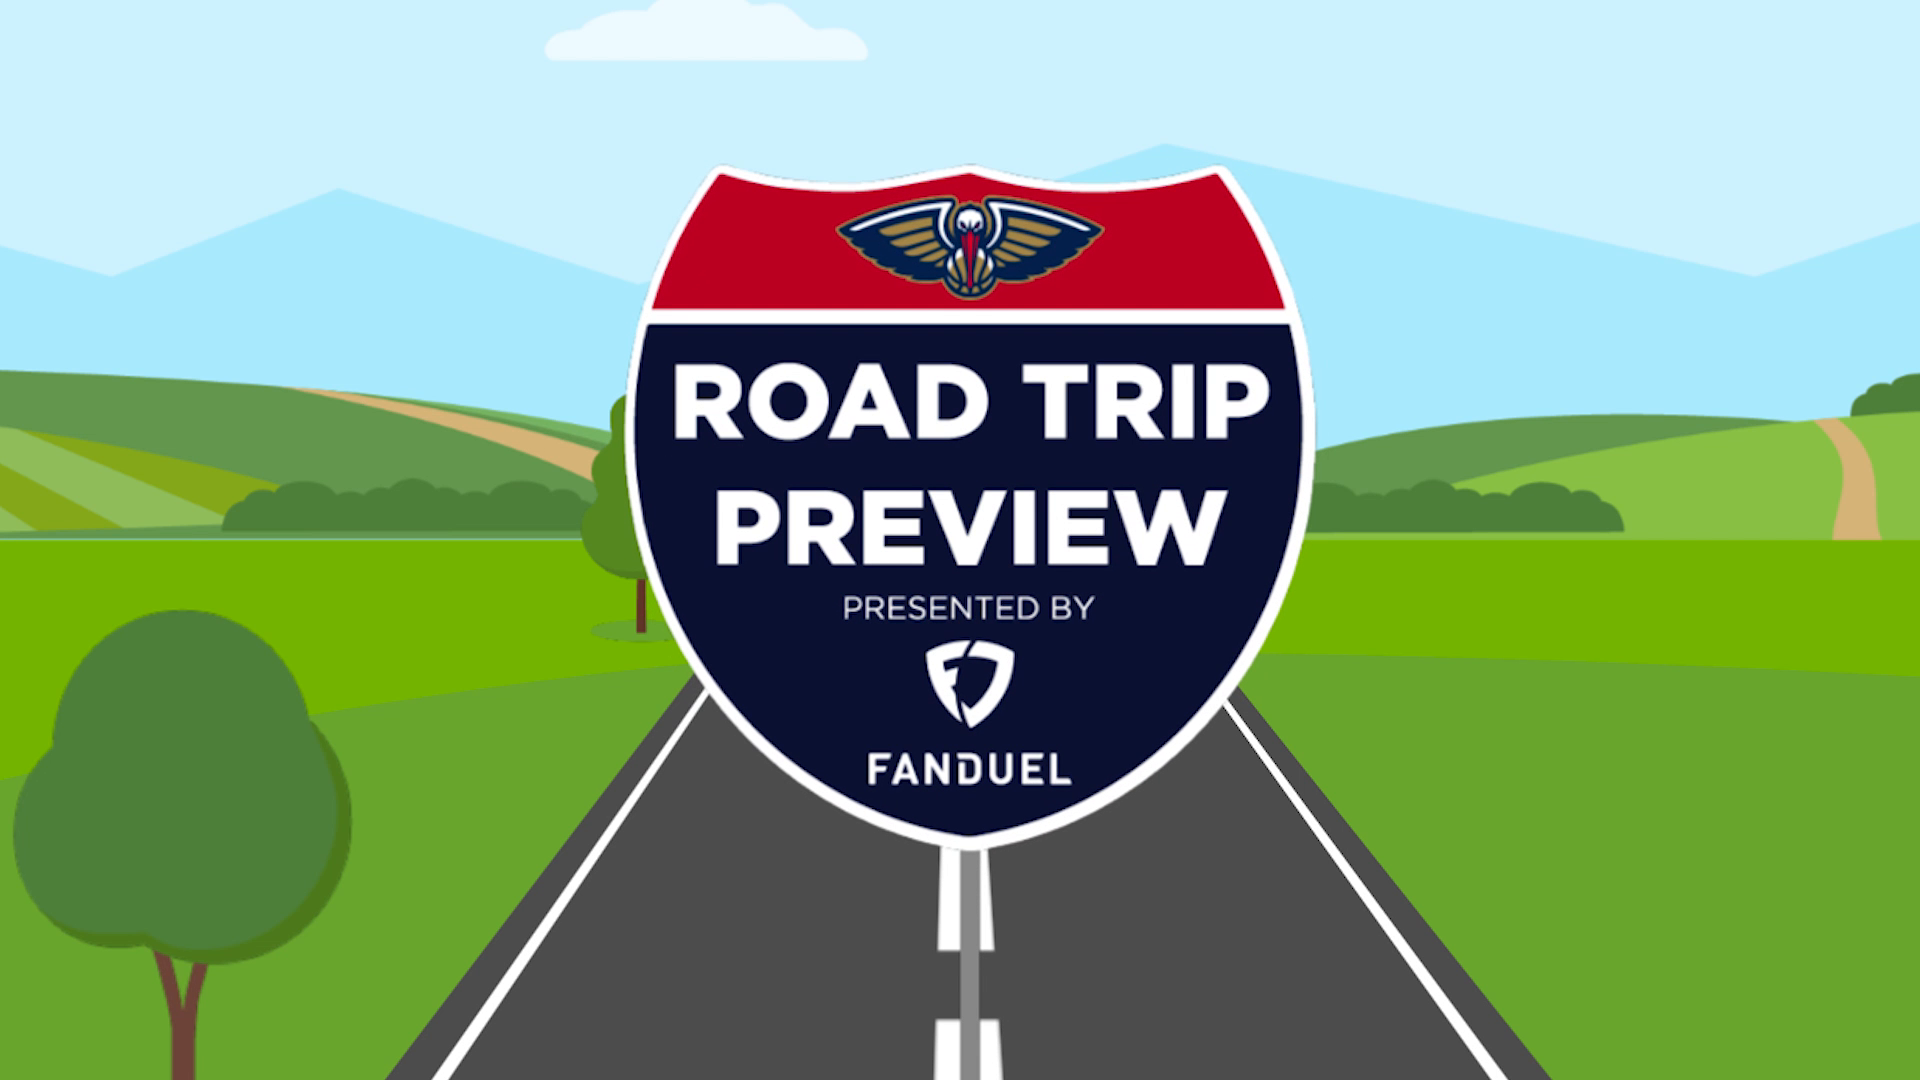 Pelicans Road Trip Preview presented by Fan Duel | Brooklyn